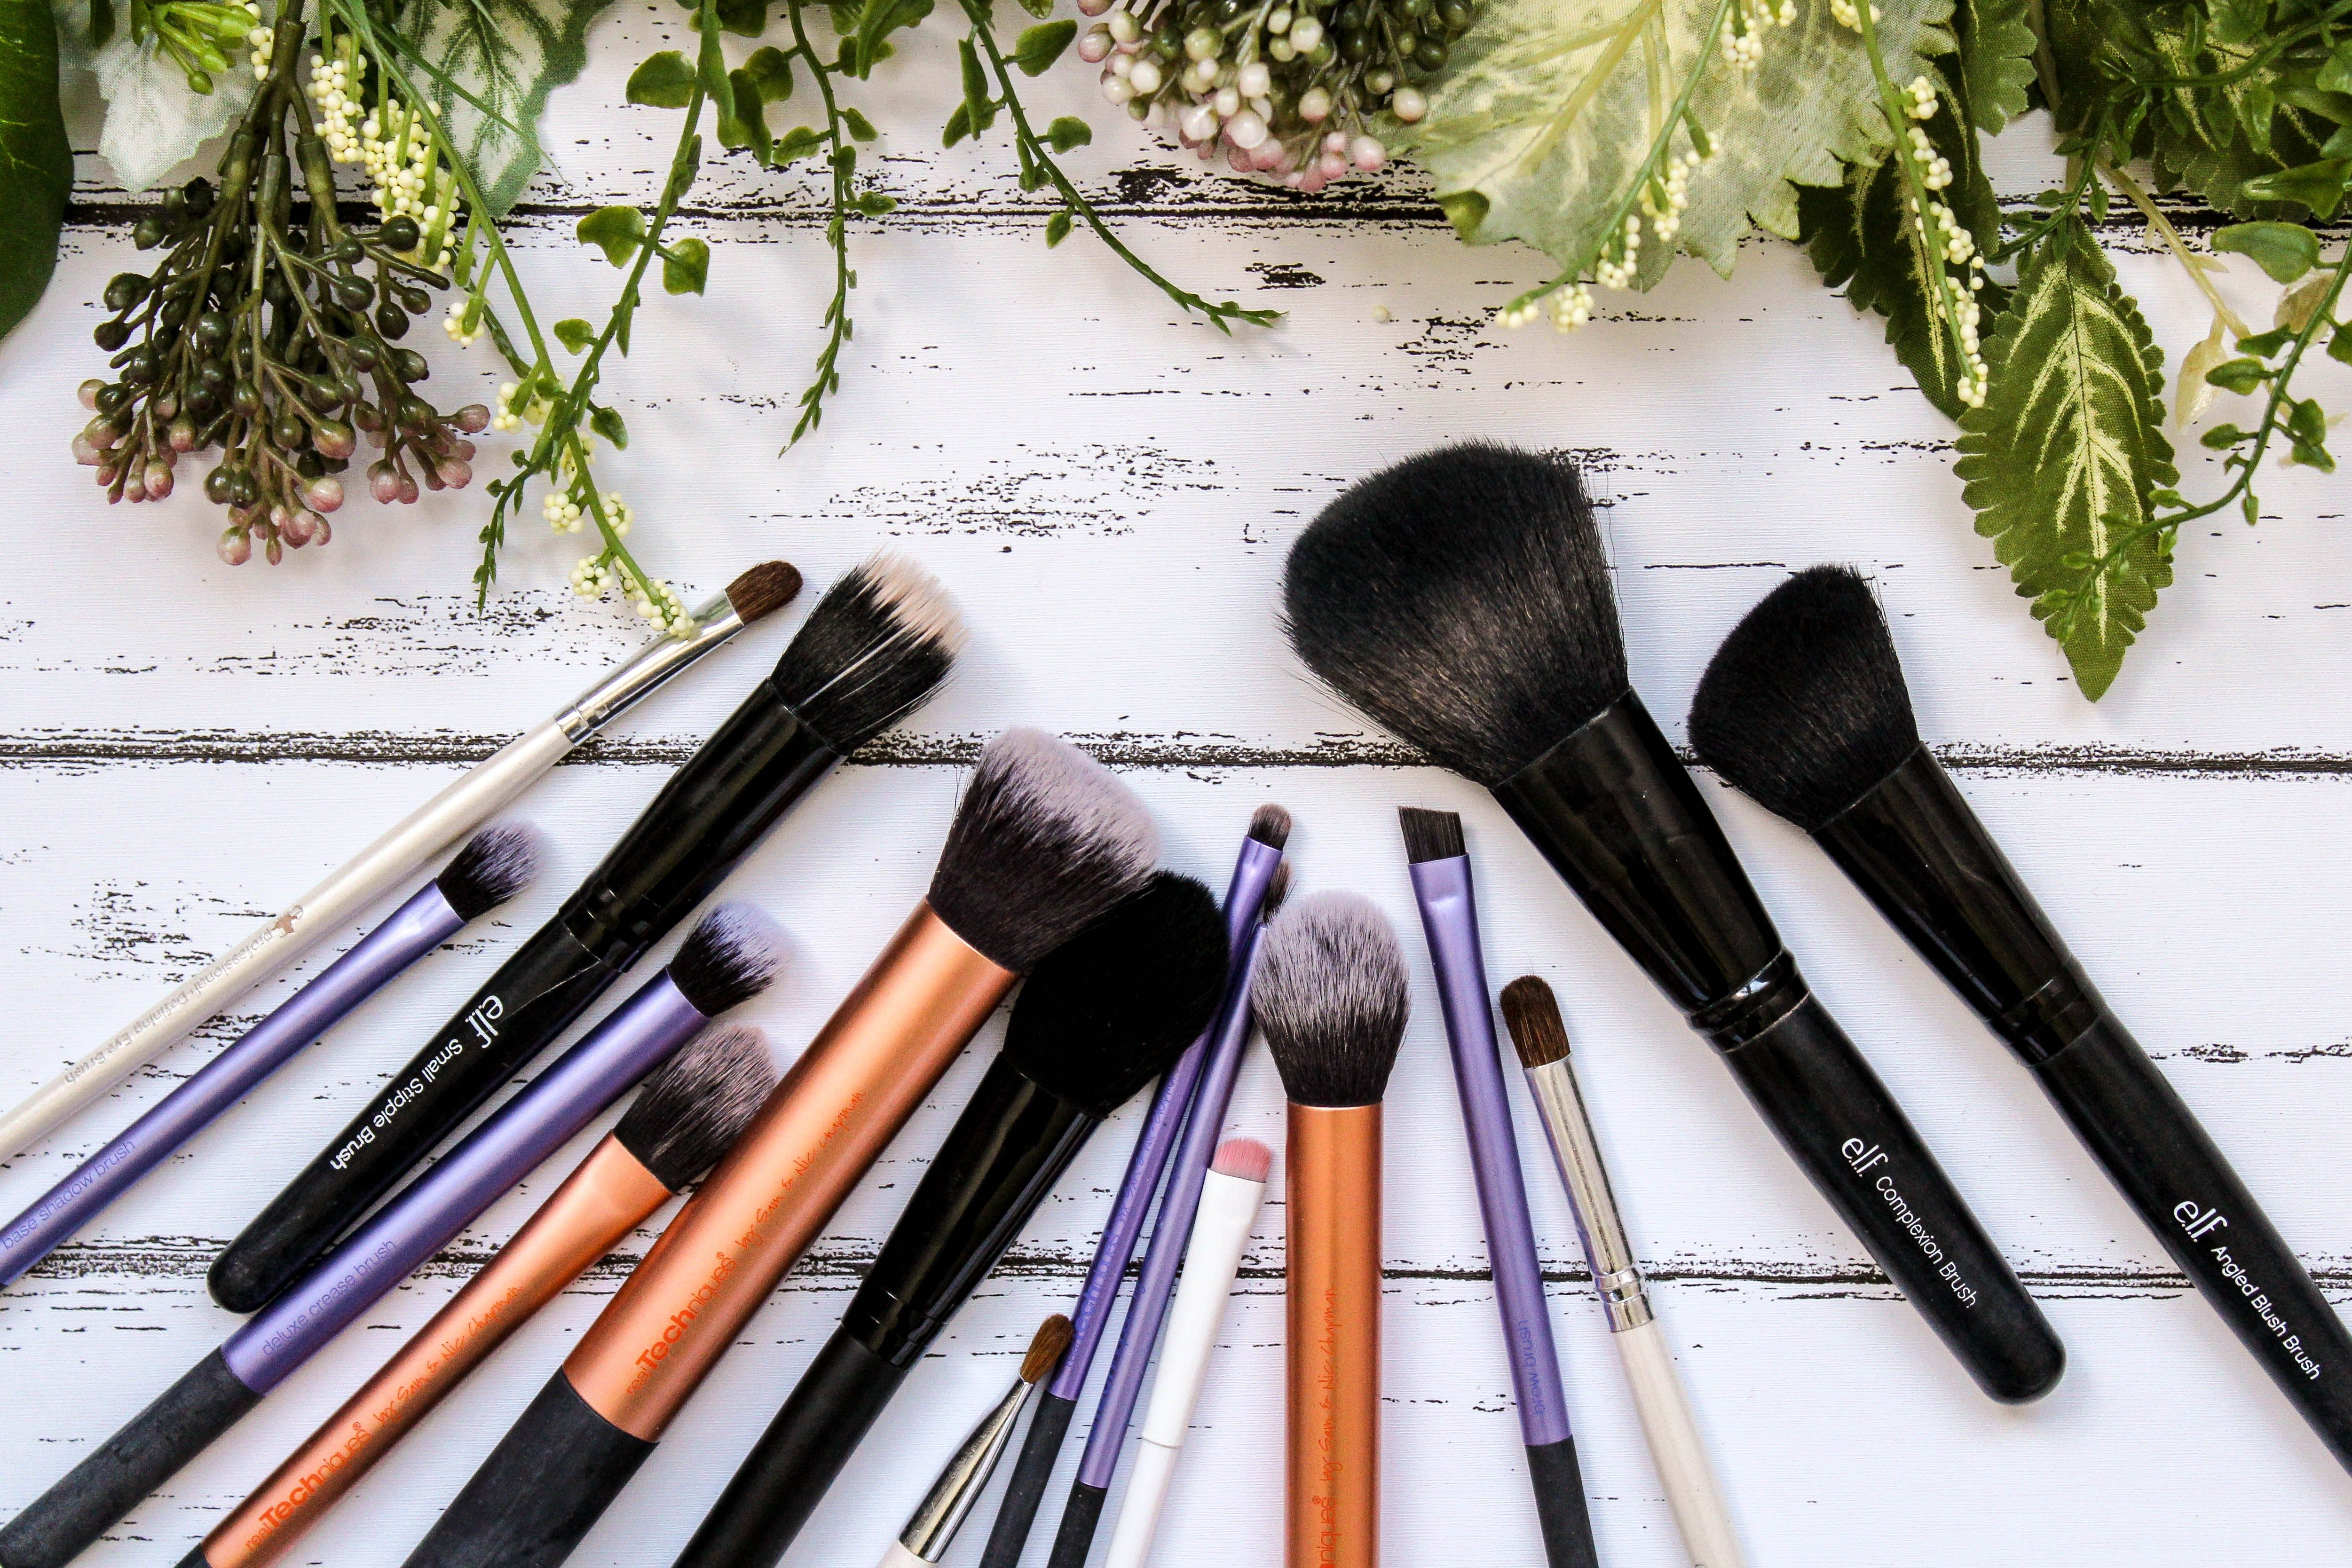 The Complete Guide To Makeup Brushes Makeup brushes